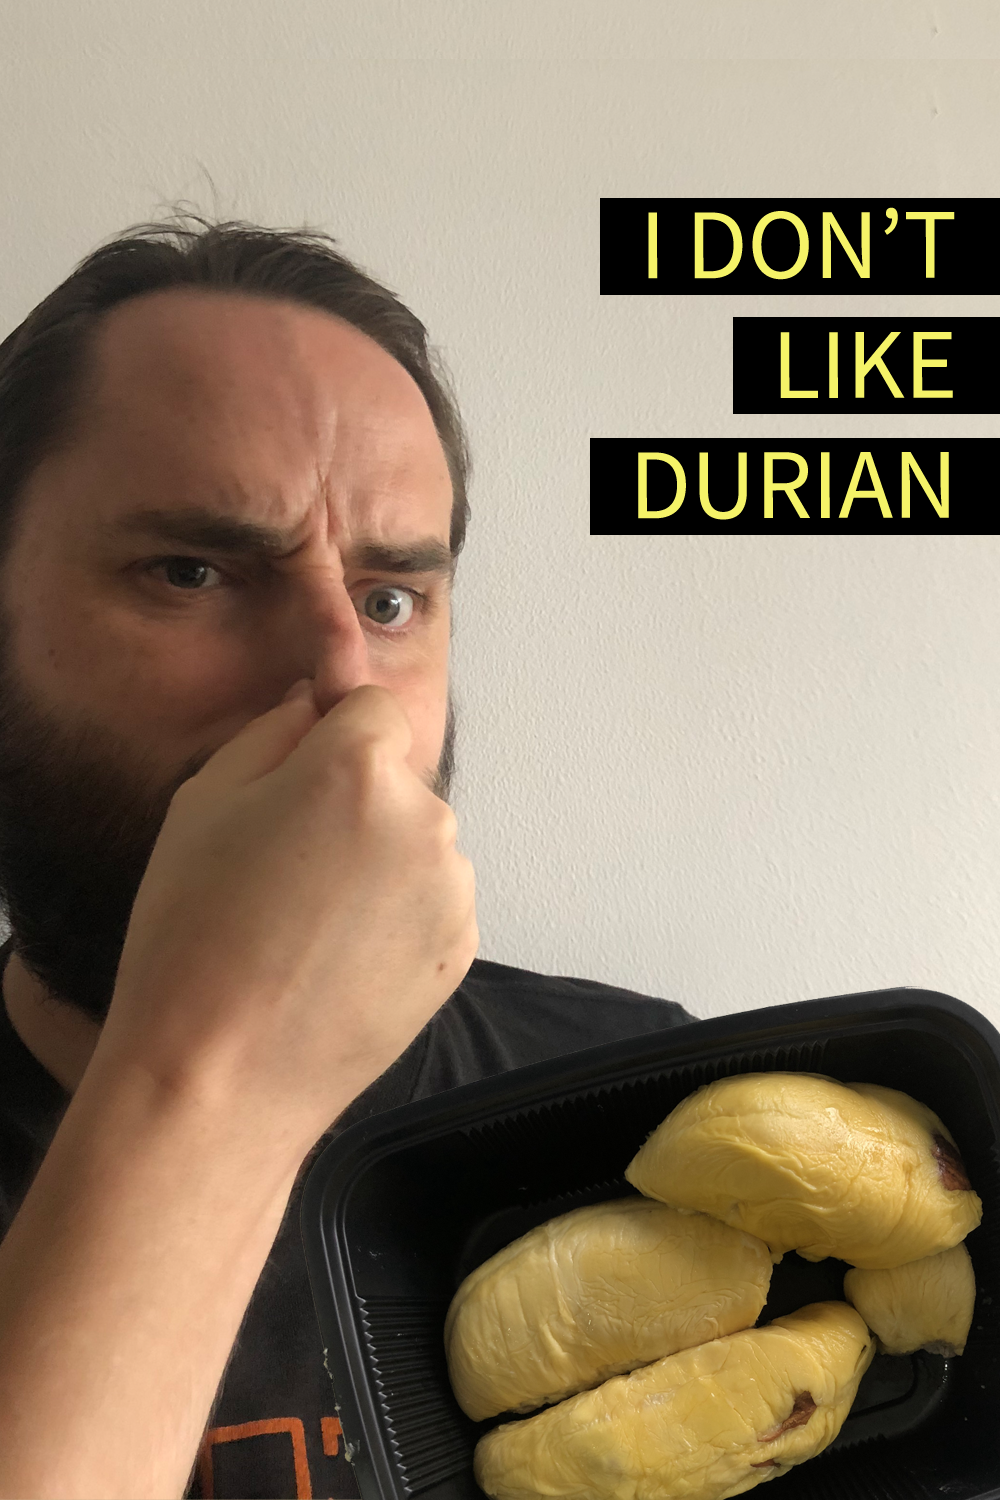 "Image contains a photo of a bearded white man pinching his nose and looking unhappy. To the right of the man, there is a black plastic tray of durian, which is a yellowish fruit shaped in large pieces. In the top right-hand side of the image, there is yellow text on black strips that says ""I Don't Like Durian""."